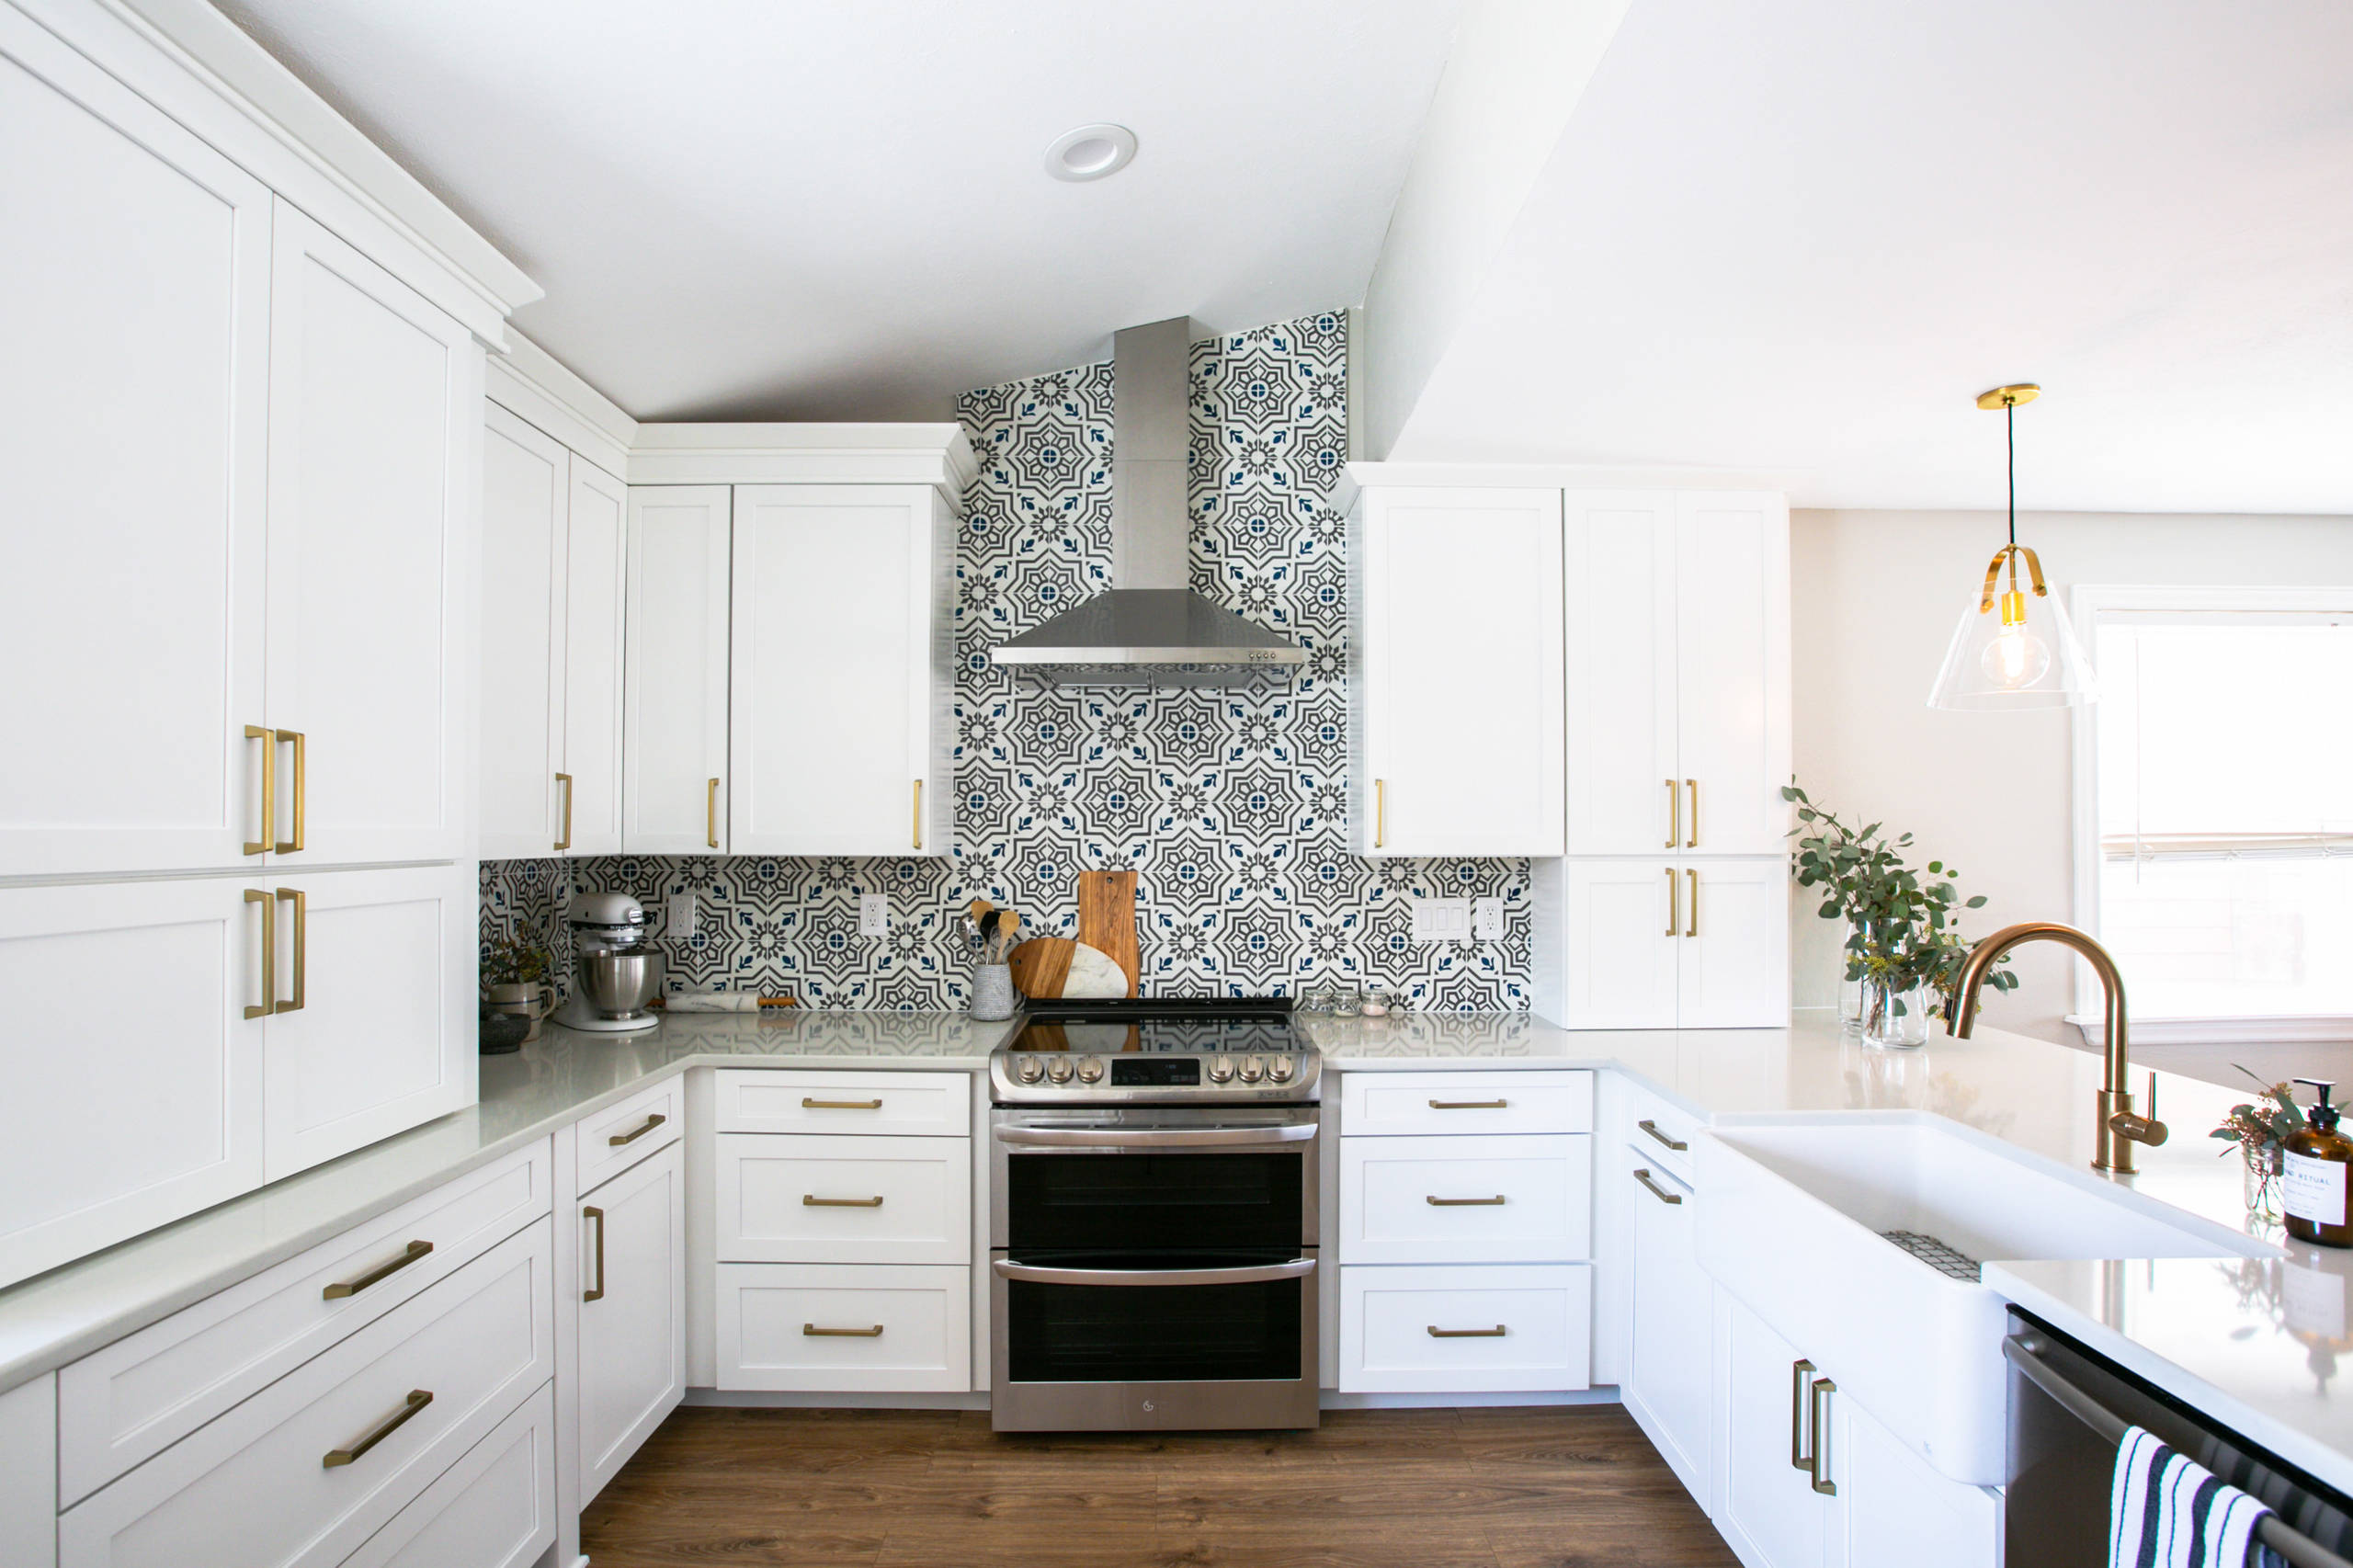 75 Beautiful Vinyl Floor Kitchen With White Cabinets Pictures Ideas January 2021 Houzz